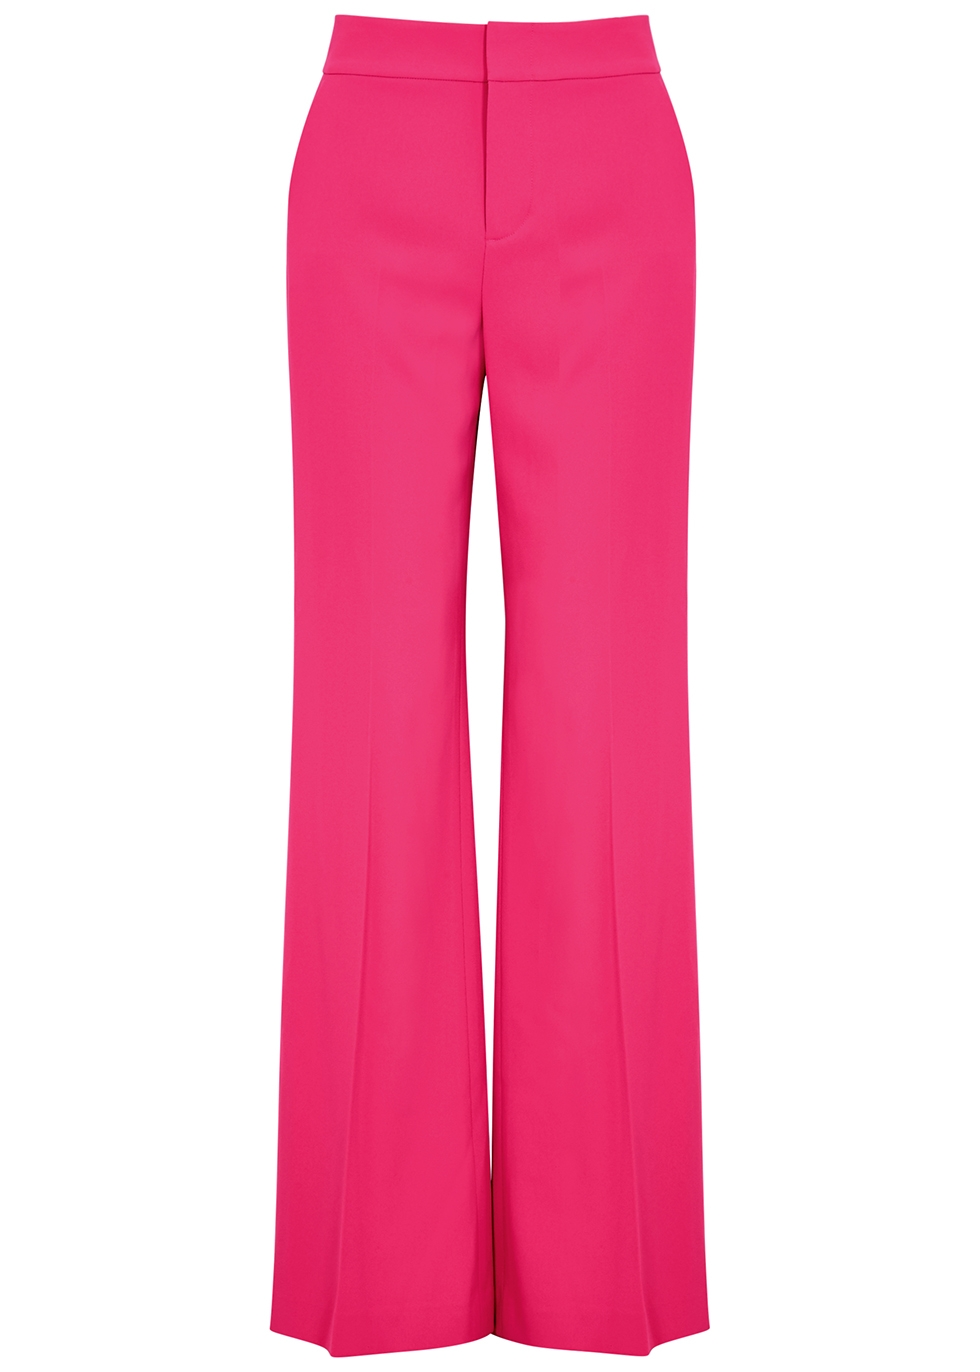 Dylan fuchsia wide-leg trousers